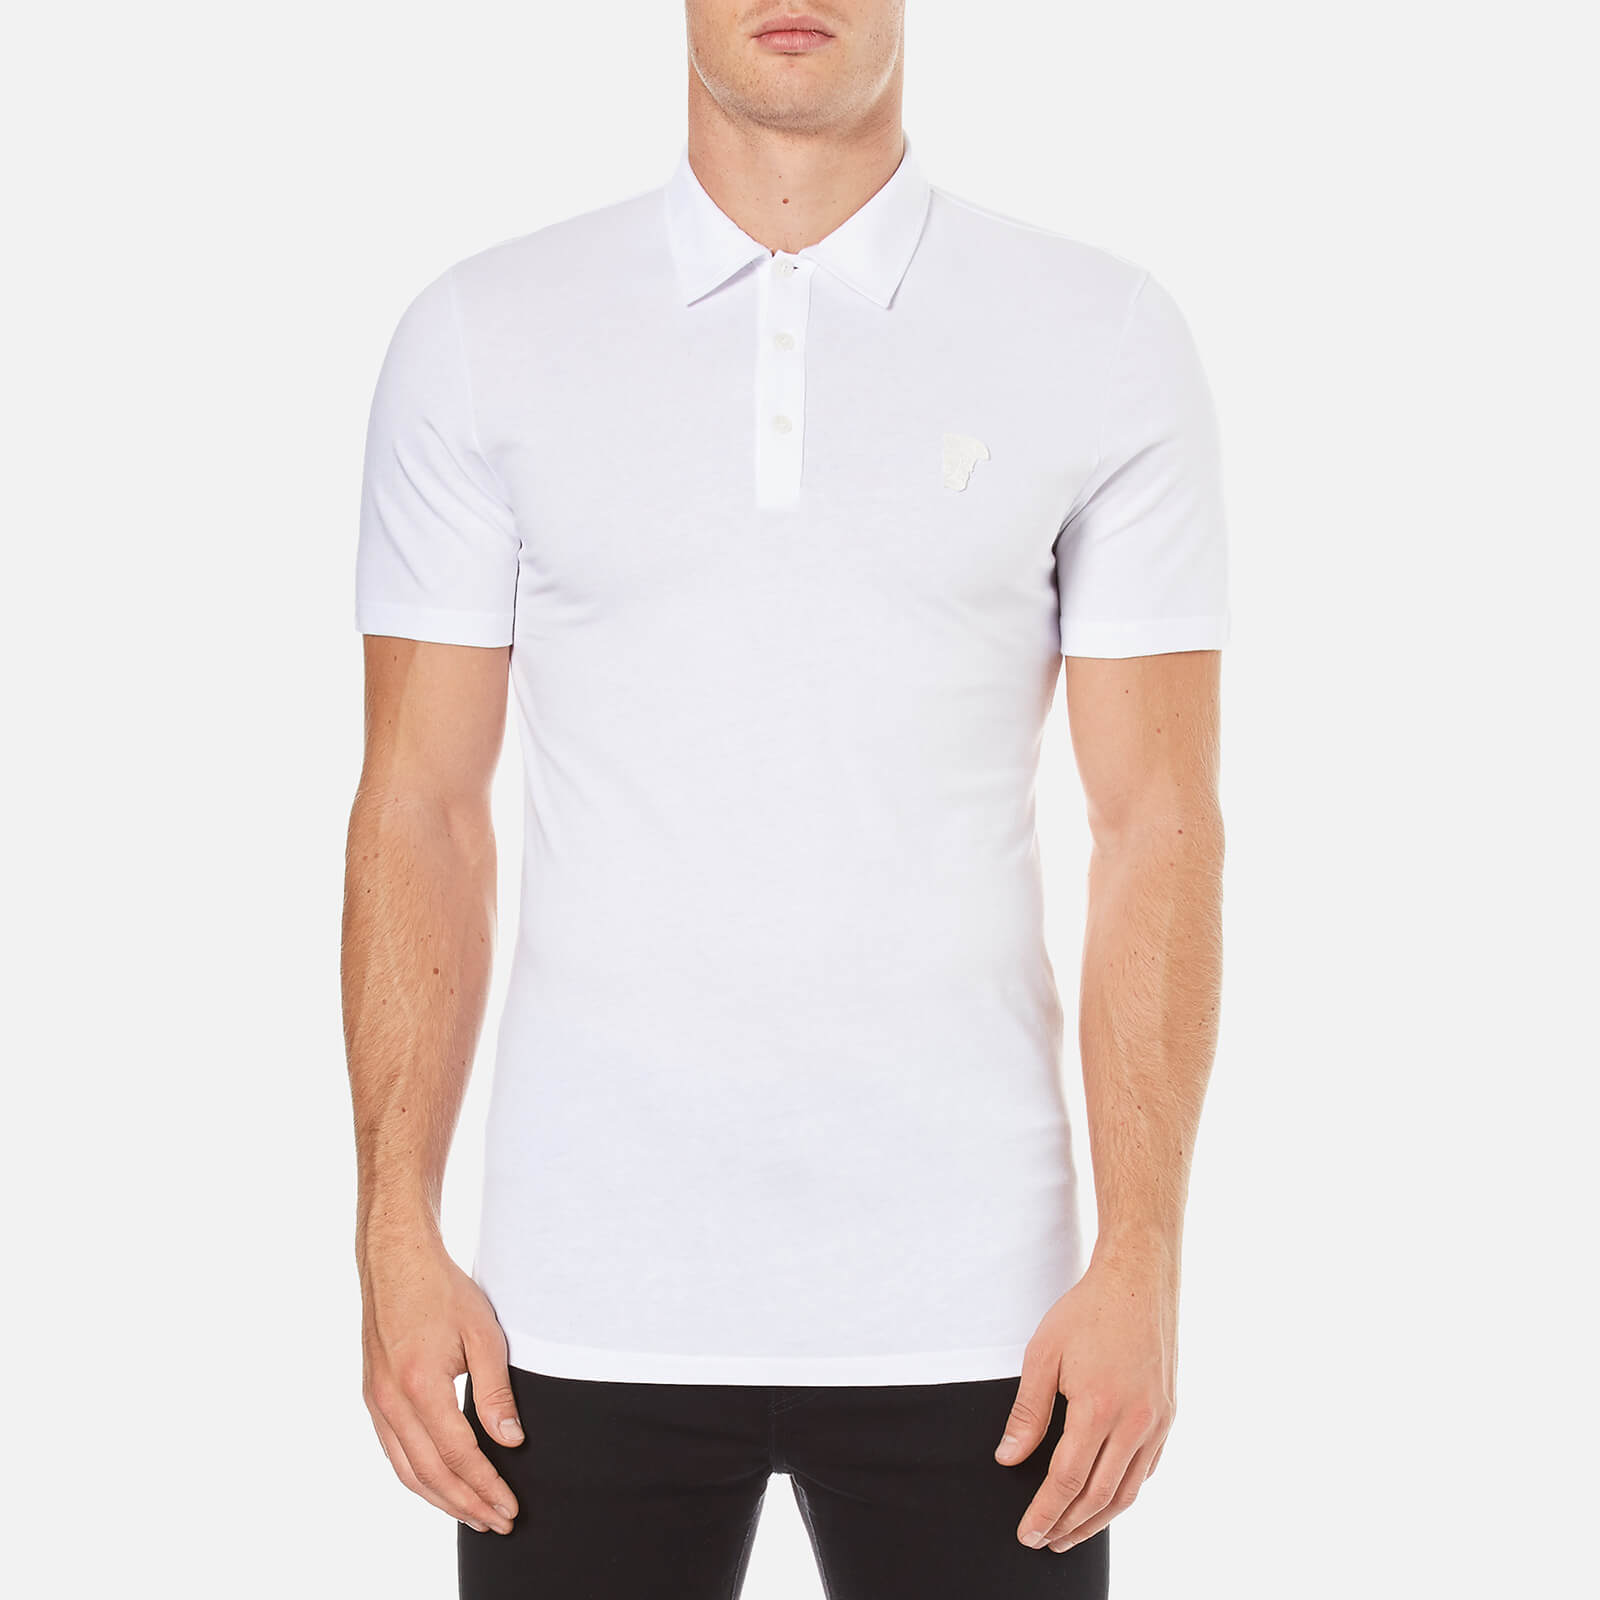 b0bcff6a Versace Collection Men's Polo Shirt - White - Free UK Delivery over £50